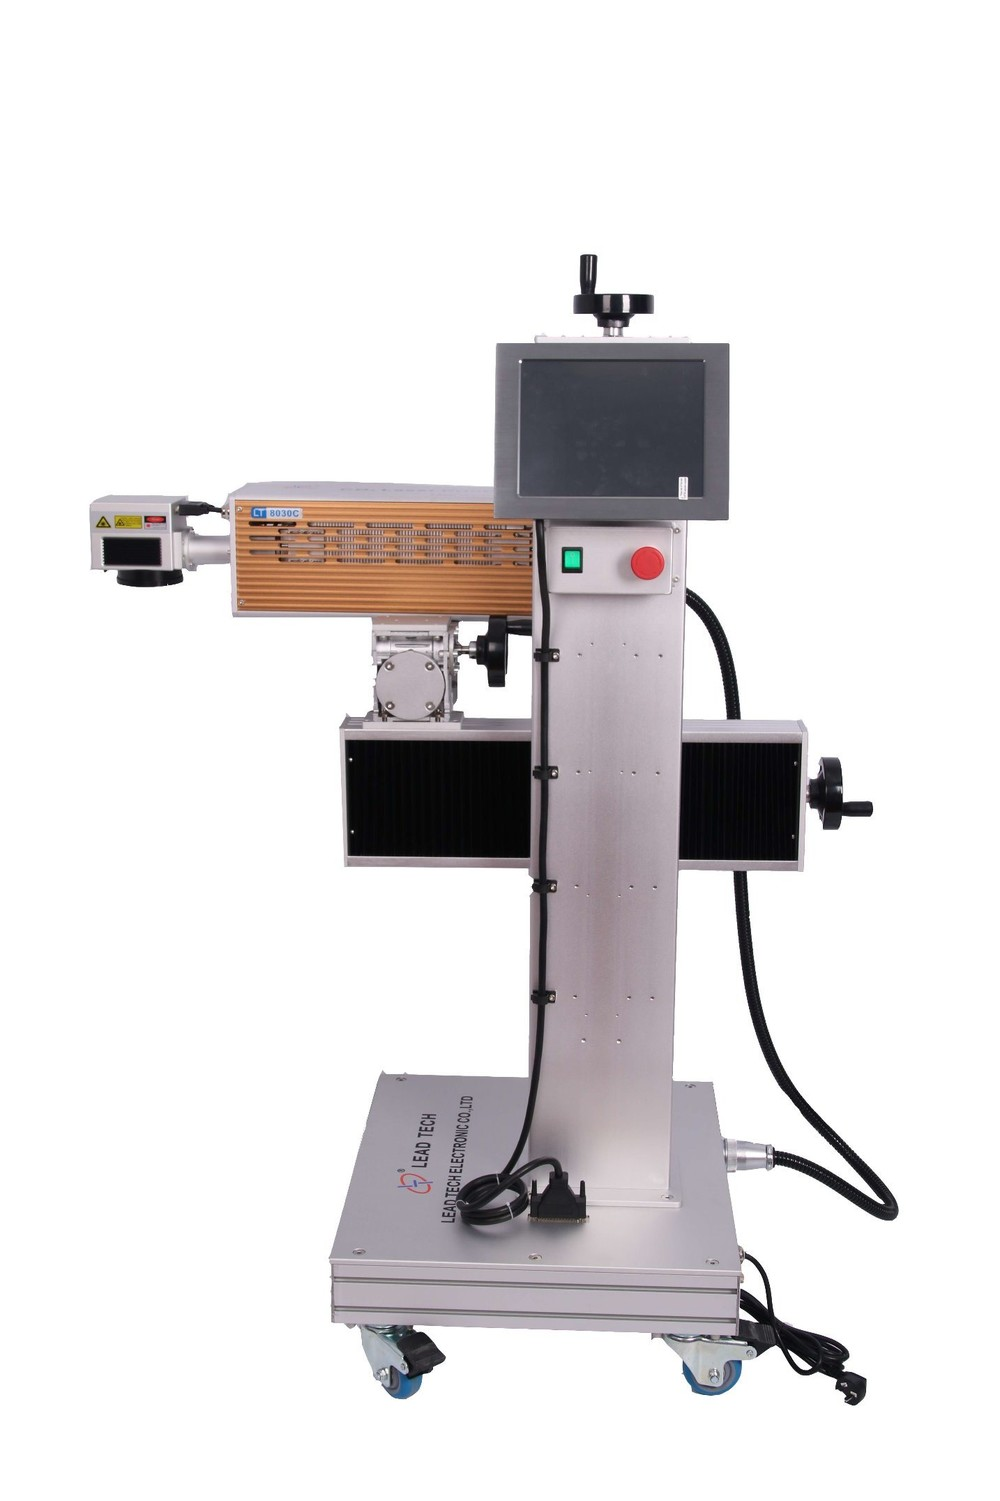 Lt8020c/Lt8030c CO2 20W/30W Digital Laser Marking Printer for HDPE PVC Plastic Pipe Cable Aluminum